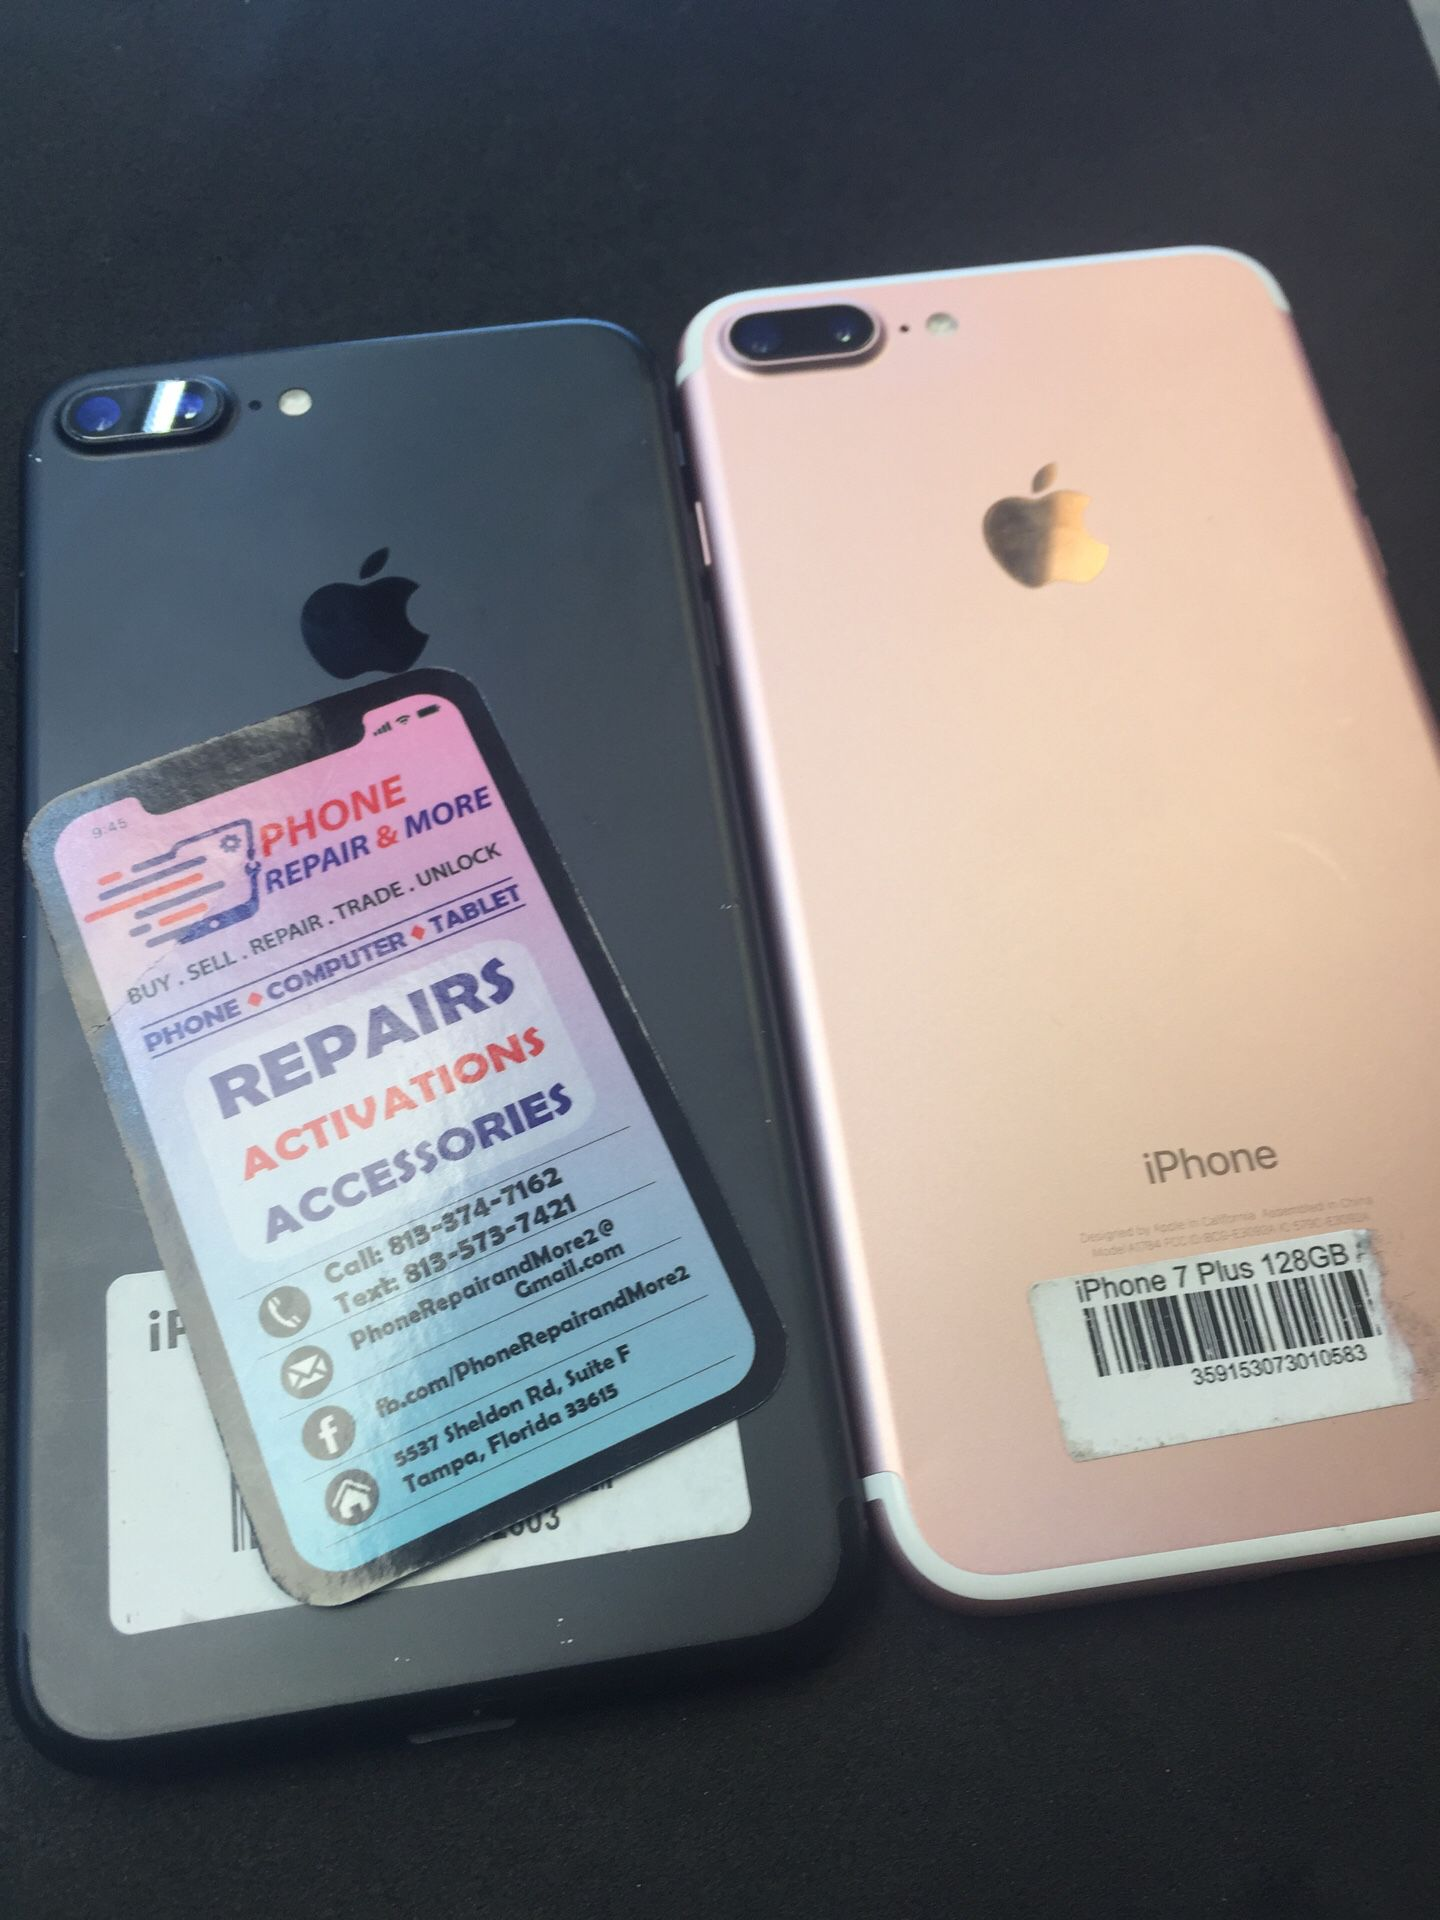 iPhone 7 Plus (32GB , 128GB , 256GB )| Unlocked 🔓| 30 Days warranty✅ | All colors Available ❗️| Like New